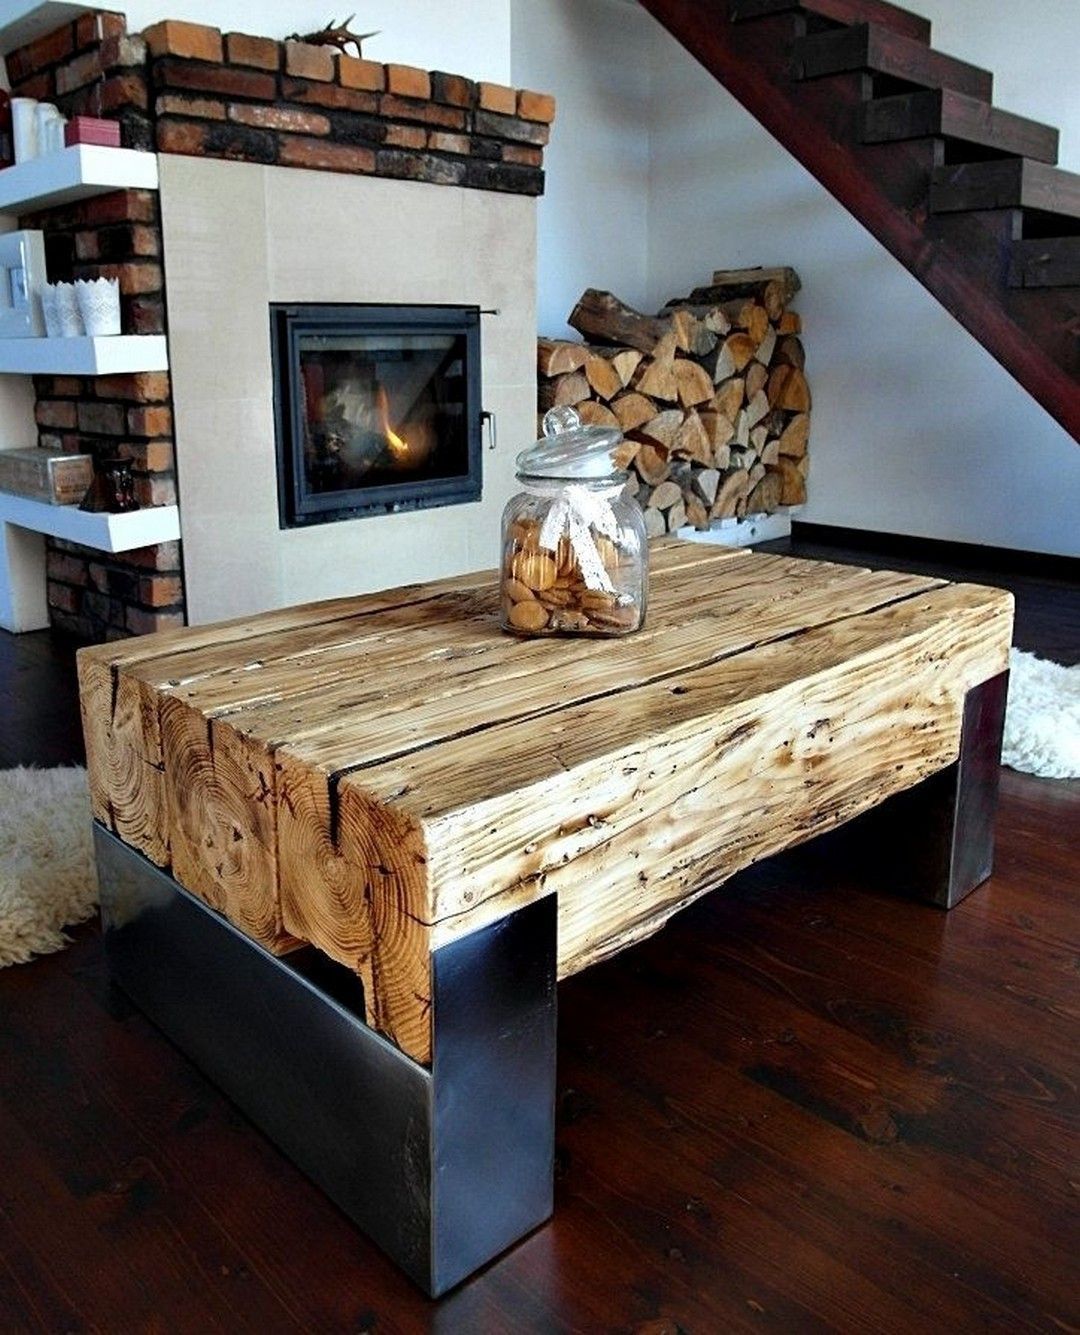 Pin By Sway Way On Decor Insp Rustic Furniture Design Rustic Industrial Coffee Table Furniture Design [ 1335 x 1080 Pixel ]